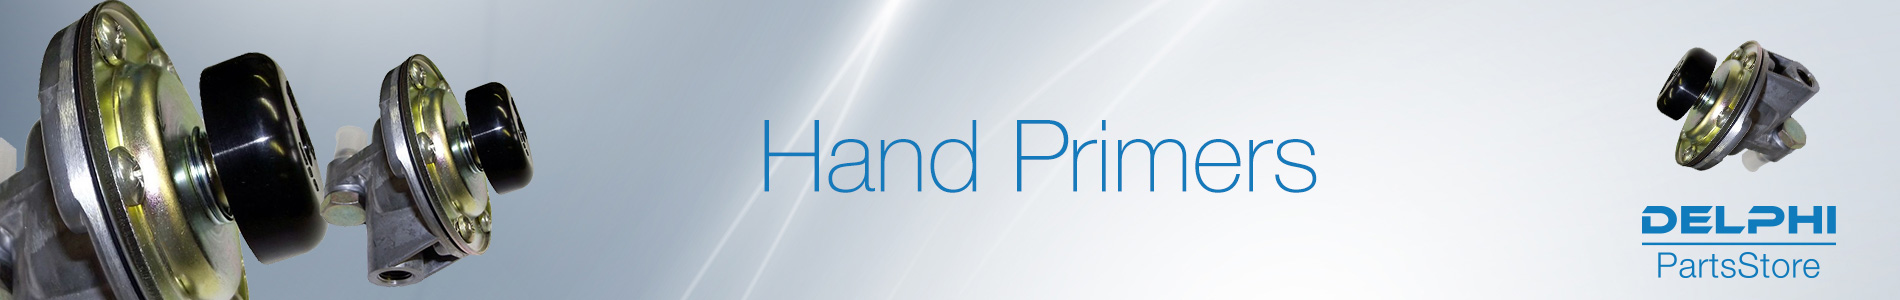 Hand Primers